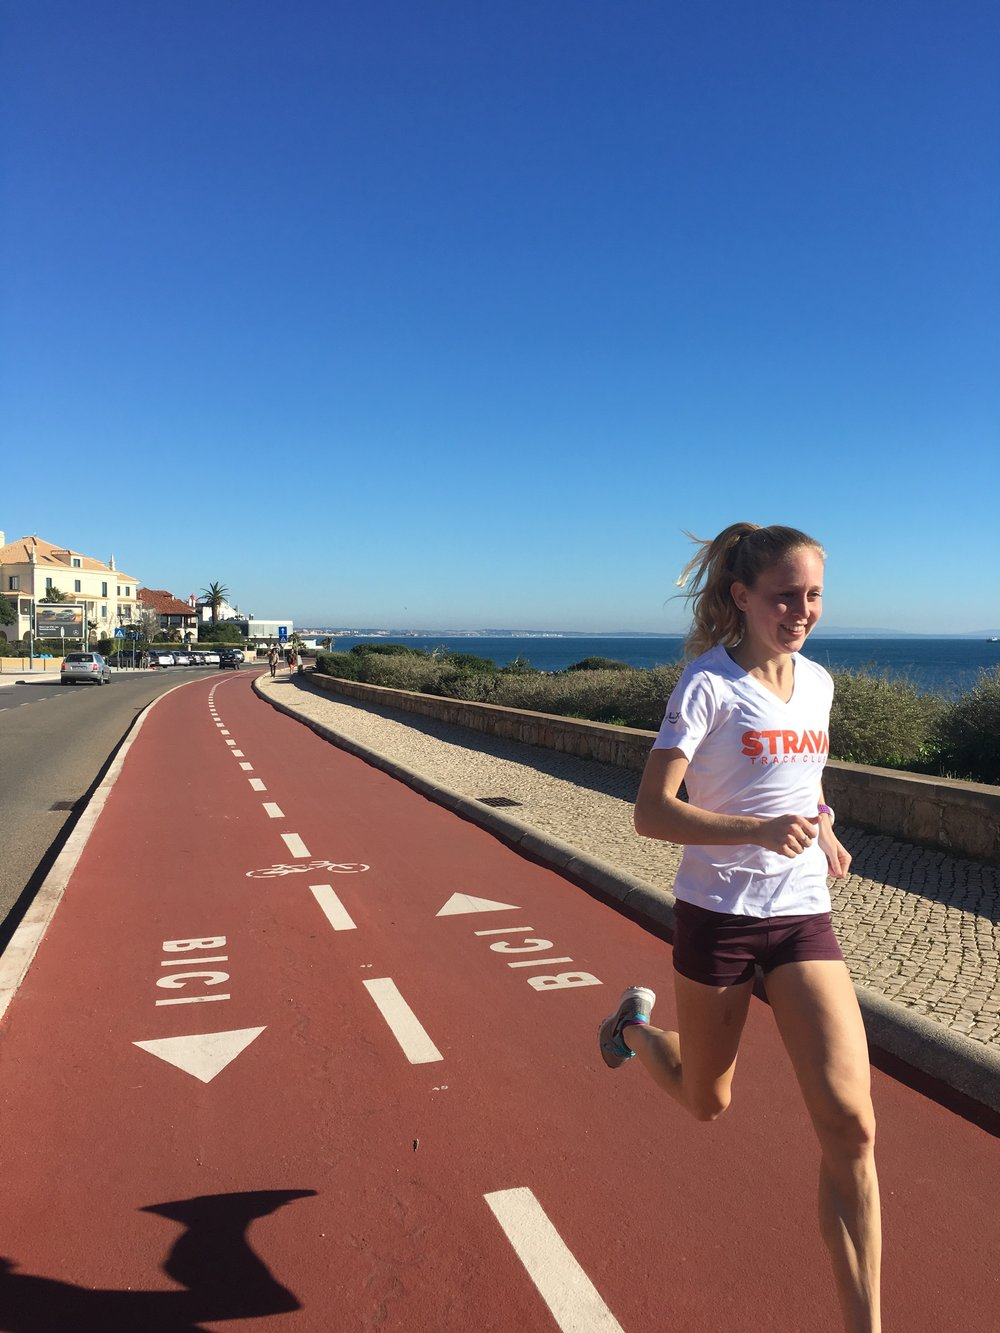 Running down 30 in Portugal earlier this month